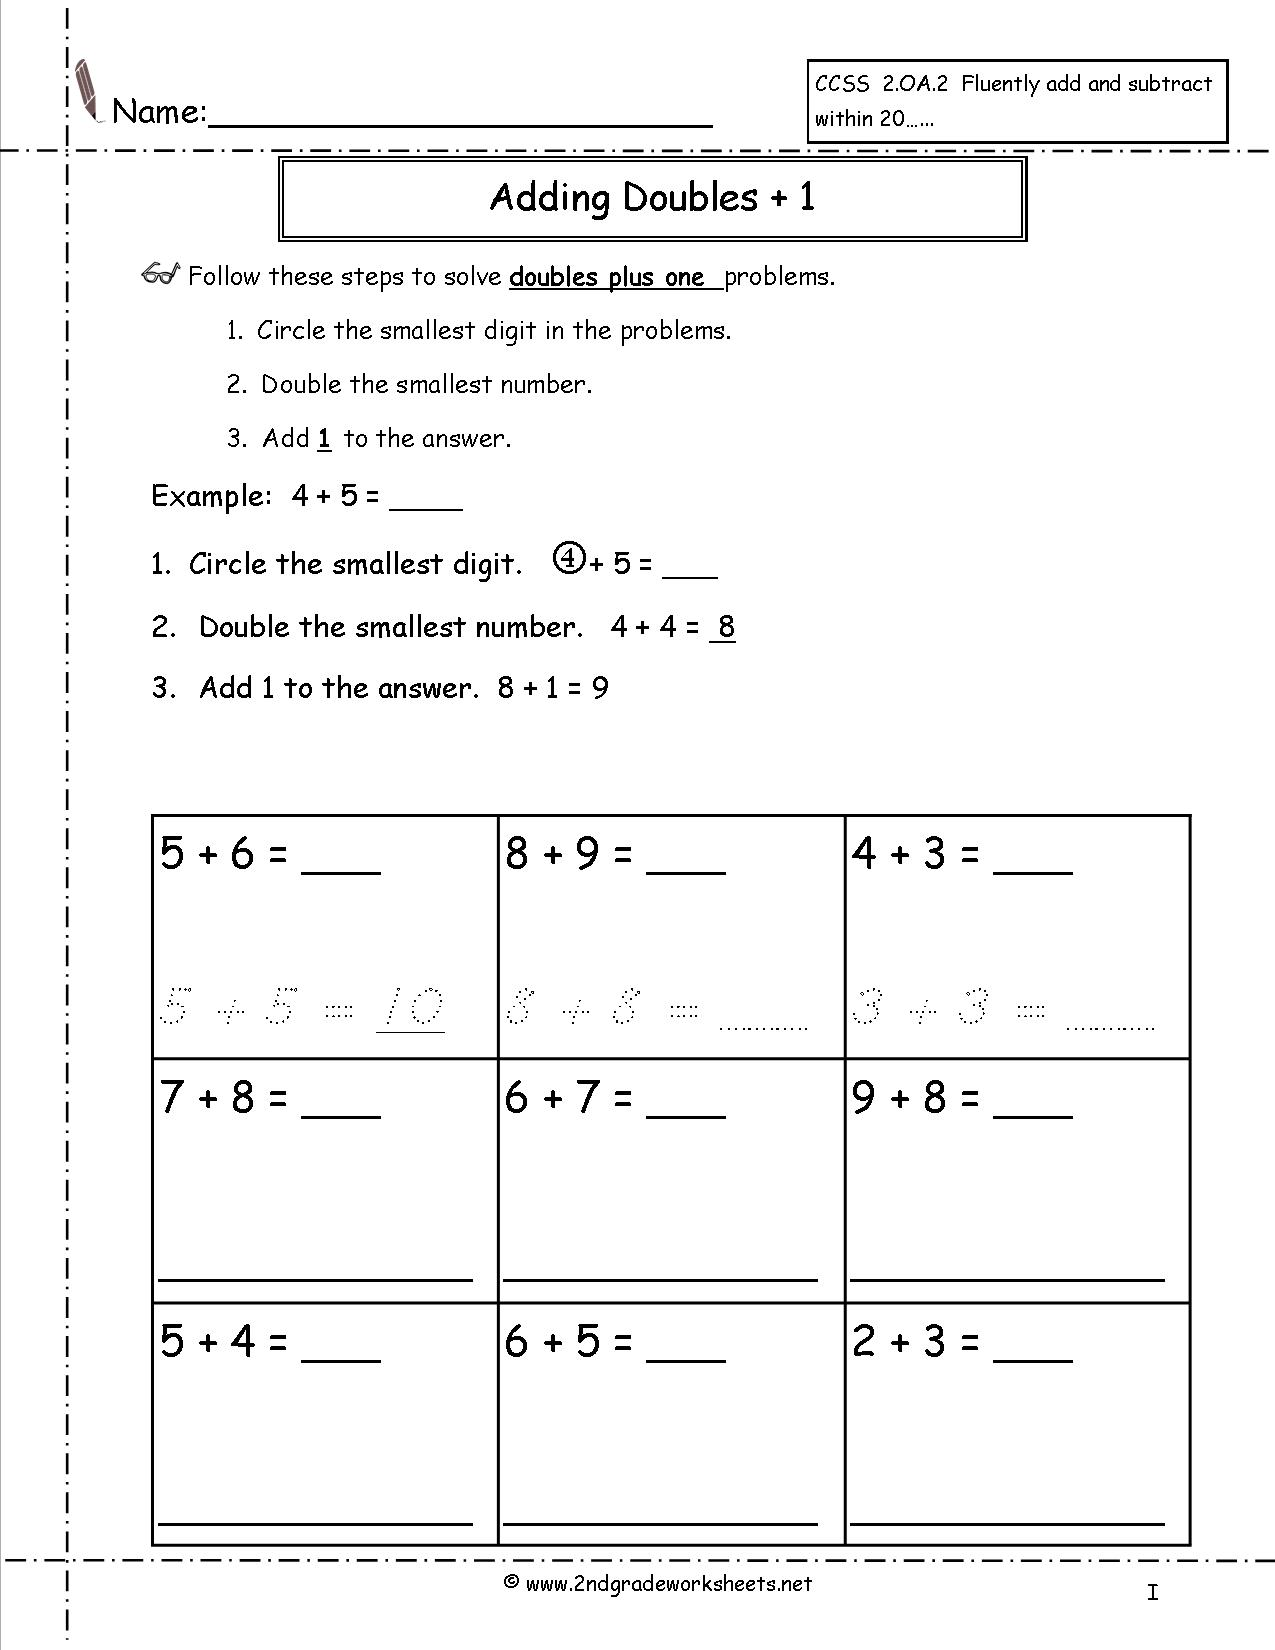 15 Best Images Of Plus 2 Addition Worksheets